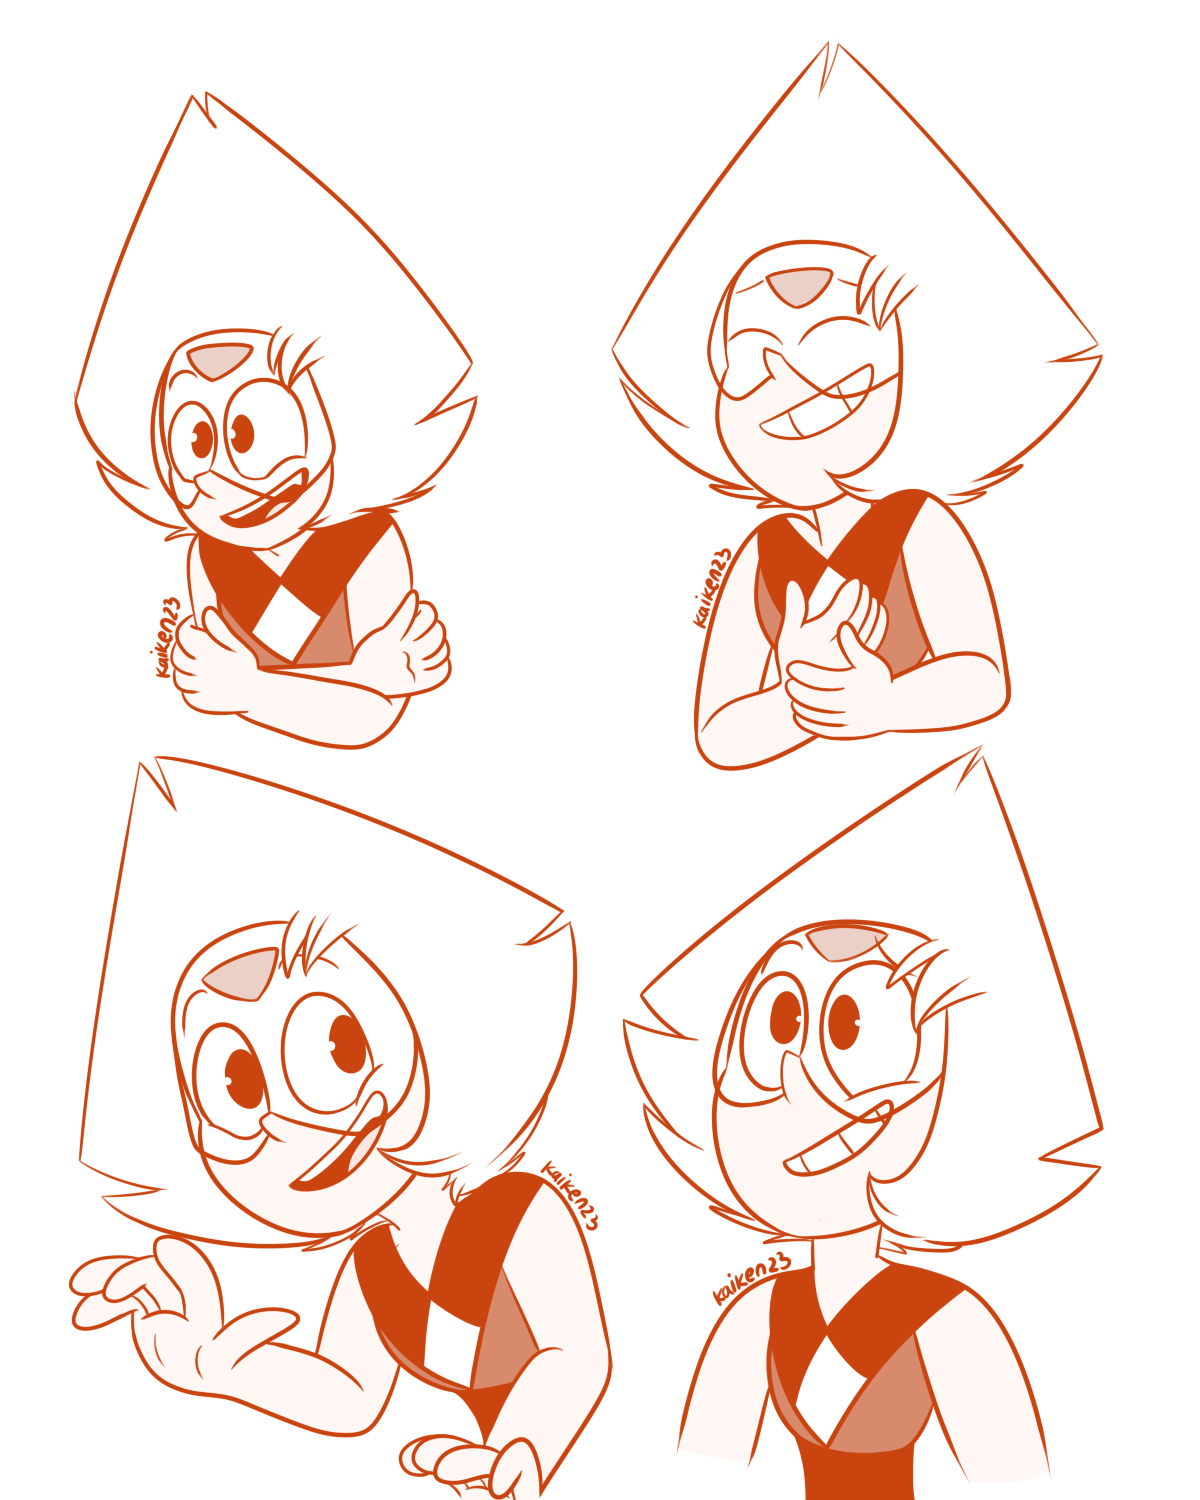 Day 77-81 - Laughing/Happy Peridot Day 82 - >:3c Day 83 - Happy Birthday ! (to me :oc)